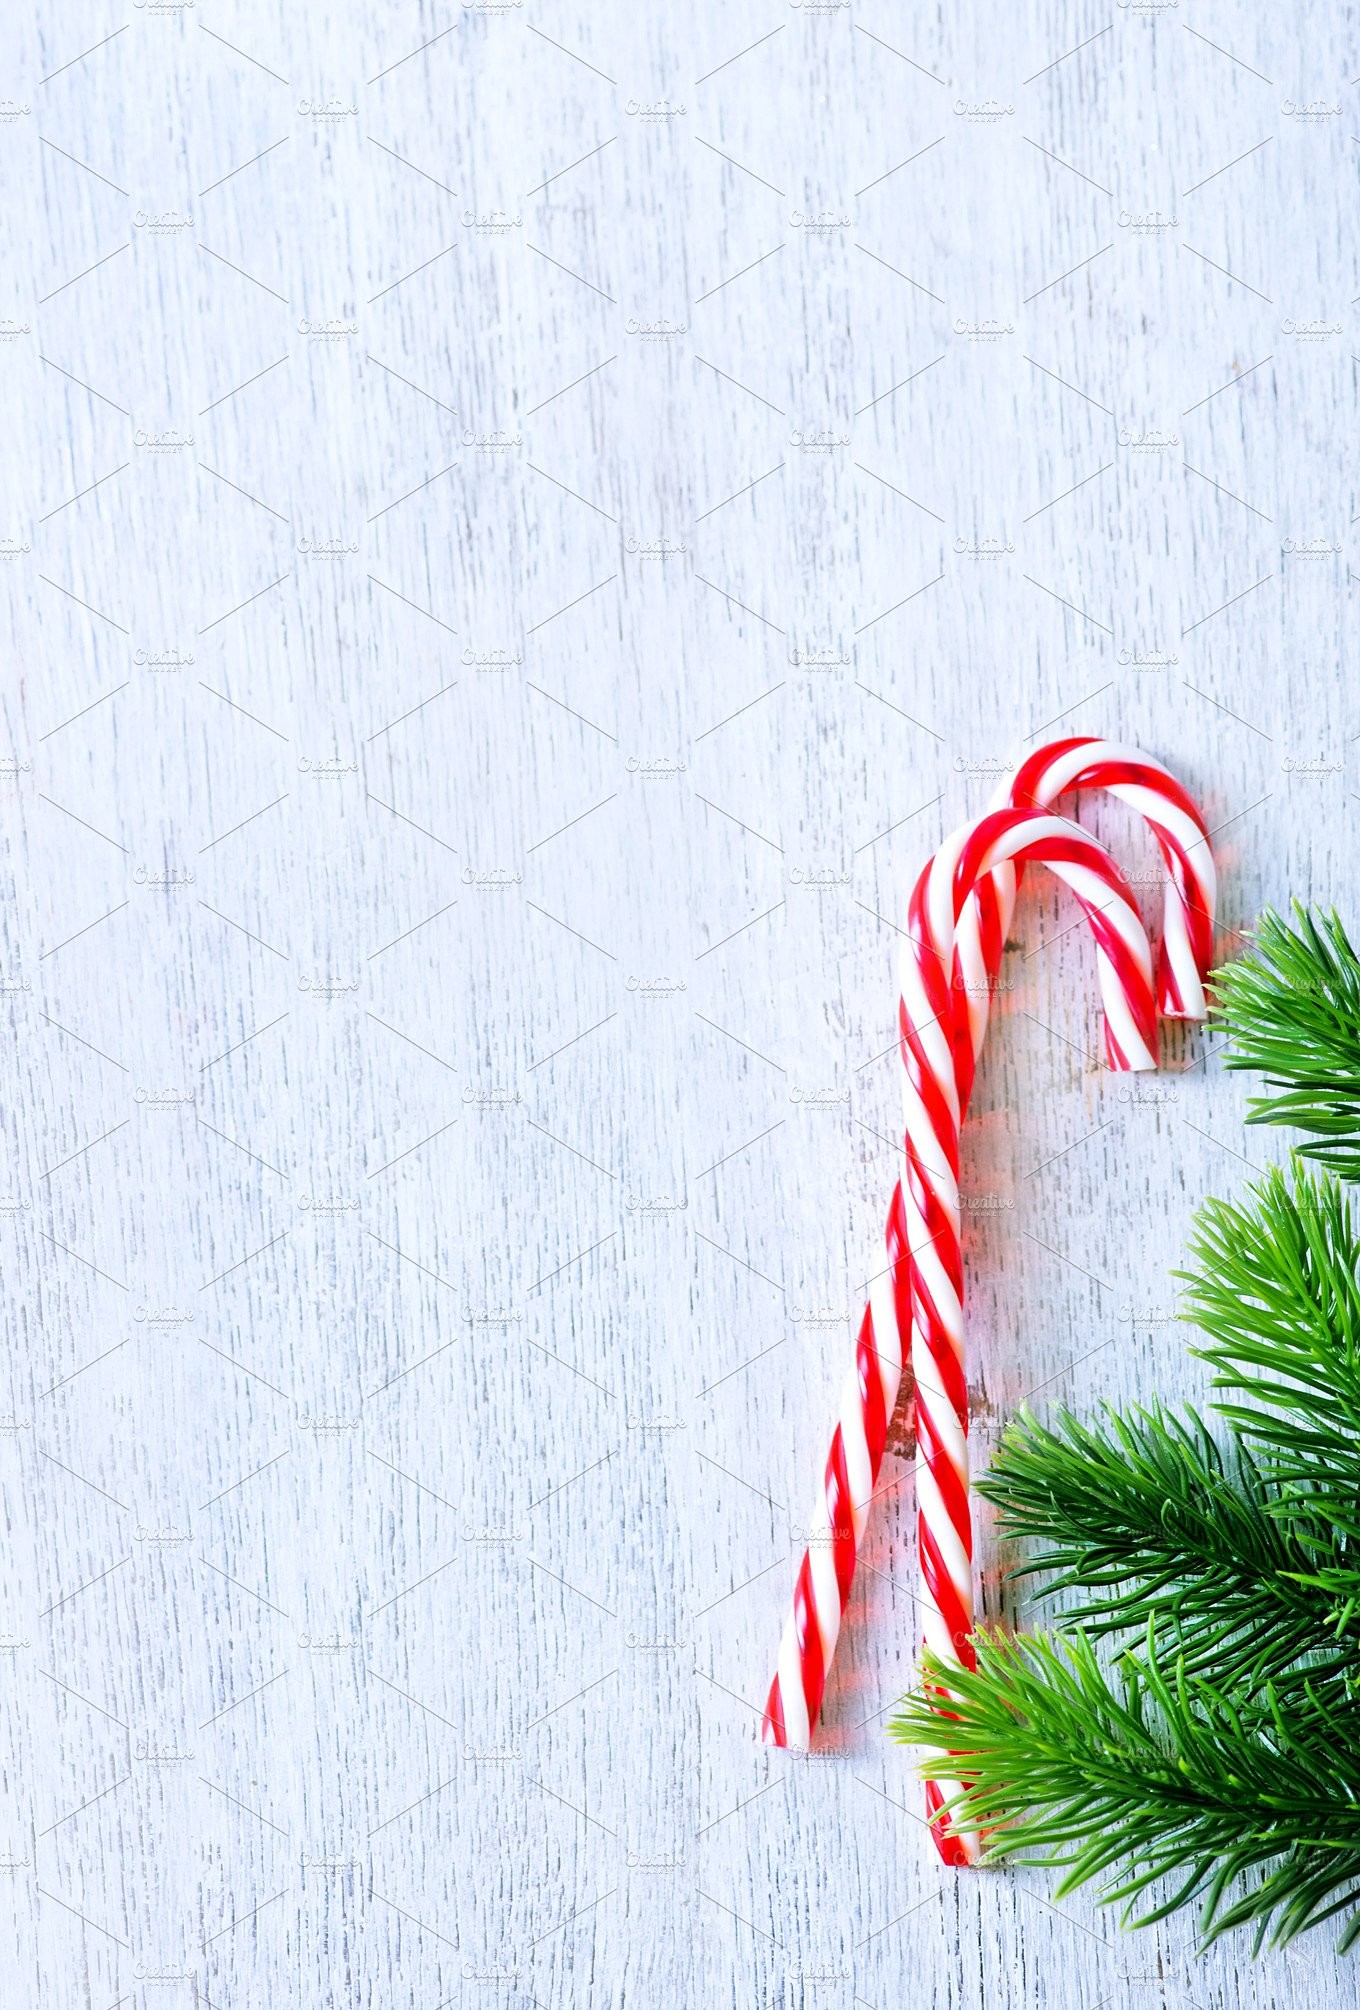 Xmas Background Images 183 ① Wallpapertag